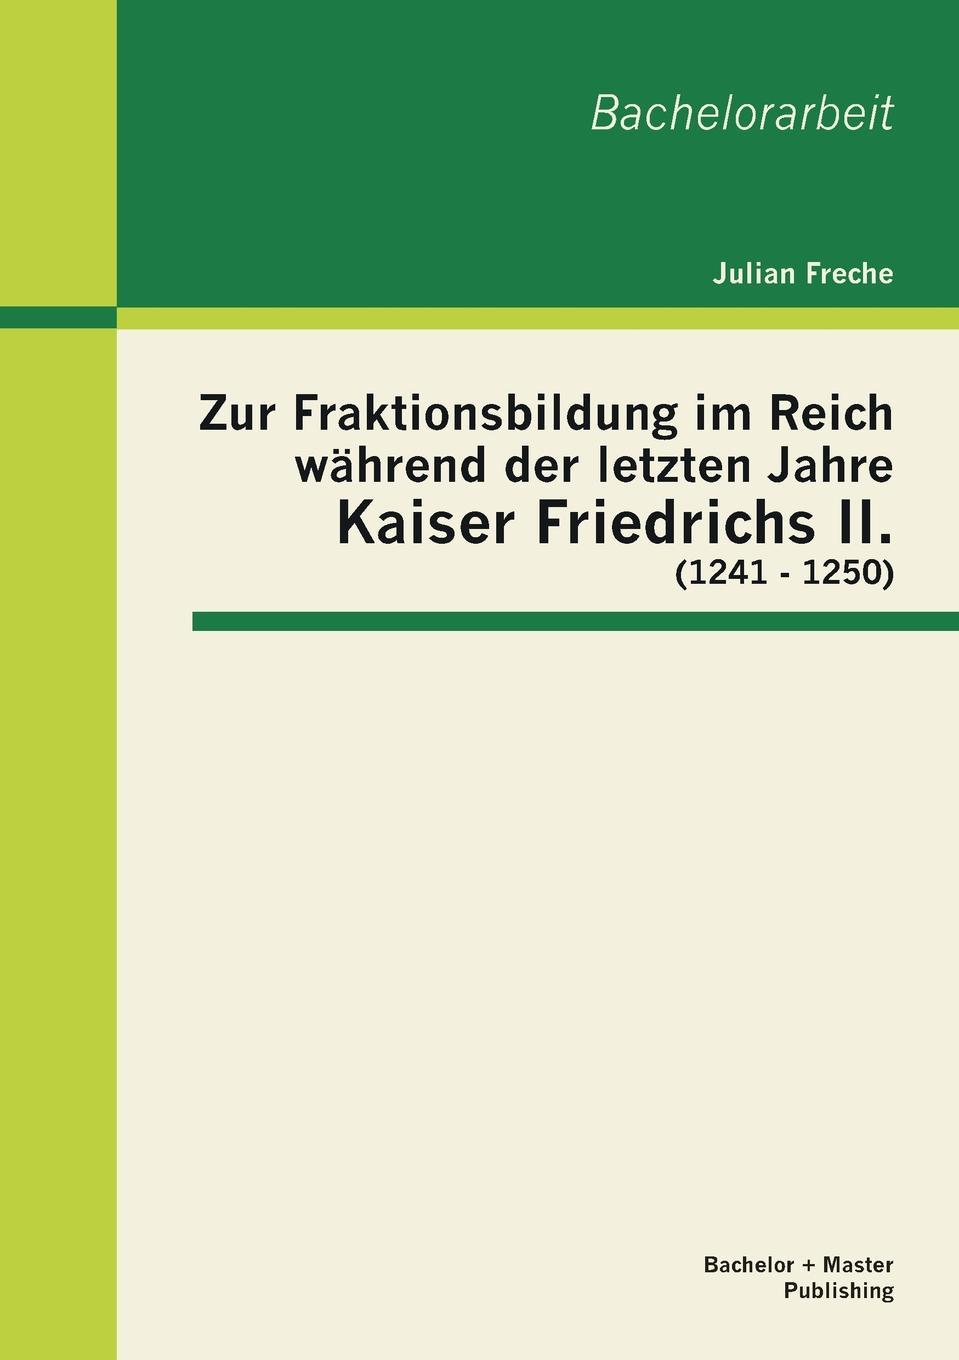 Julian Freche Zur Fraktionsbildung Im Reich Wahrend Der Letzten Jahre Kaiser Friedrichs II. (1241 - 1250) analog video recorder av converter record vhs vcr camcorder dvd player to tf card no pc need hdmi and av output together